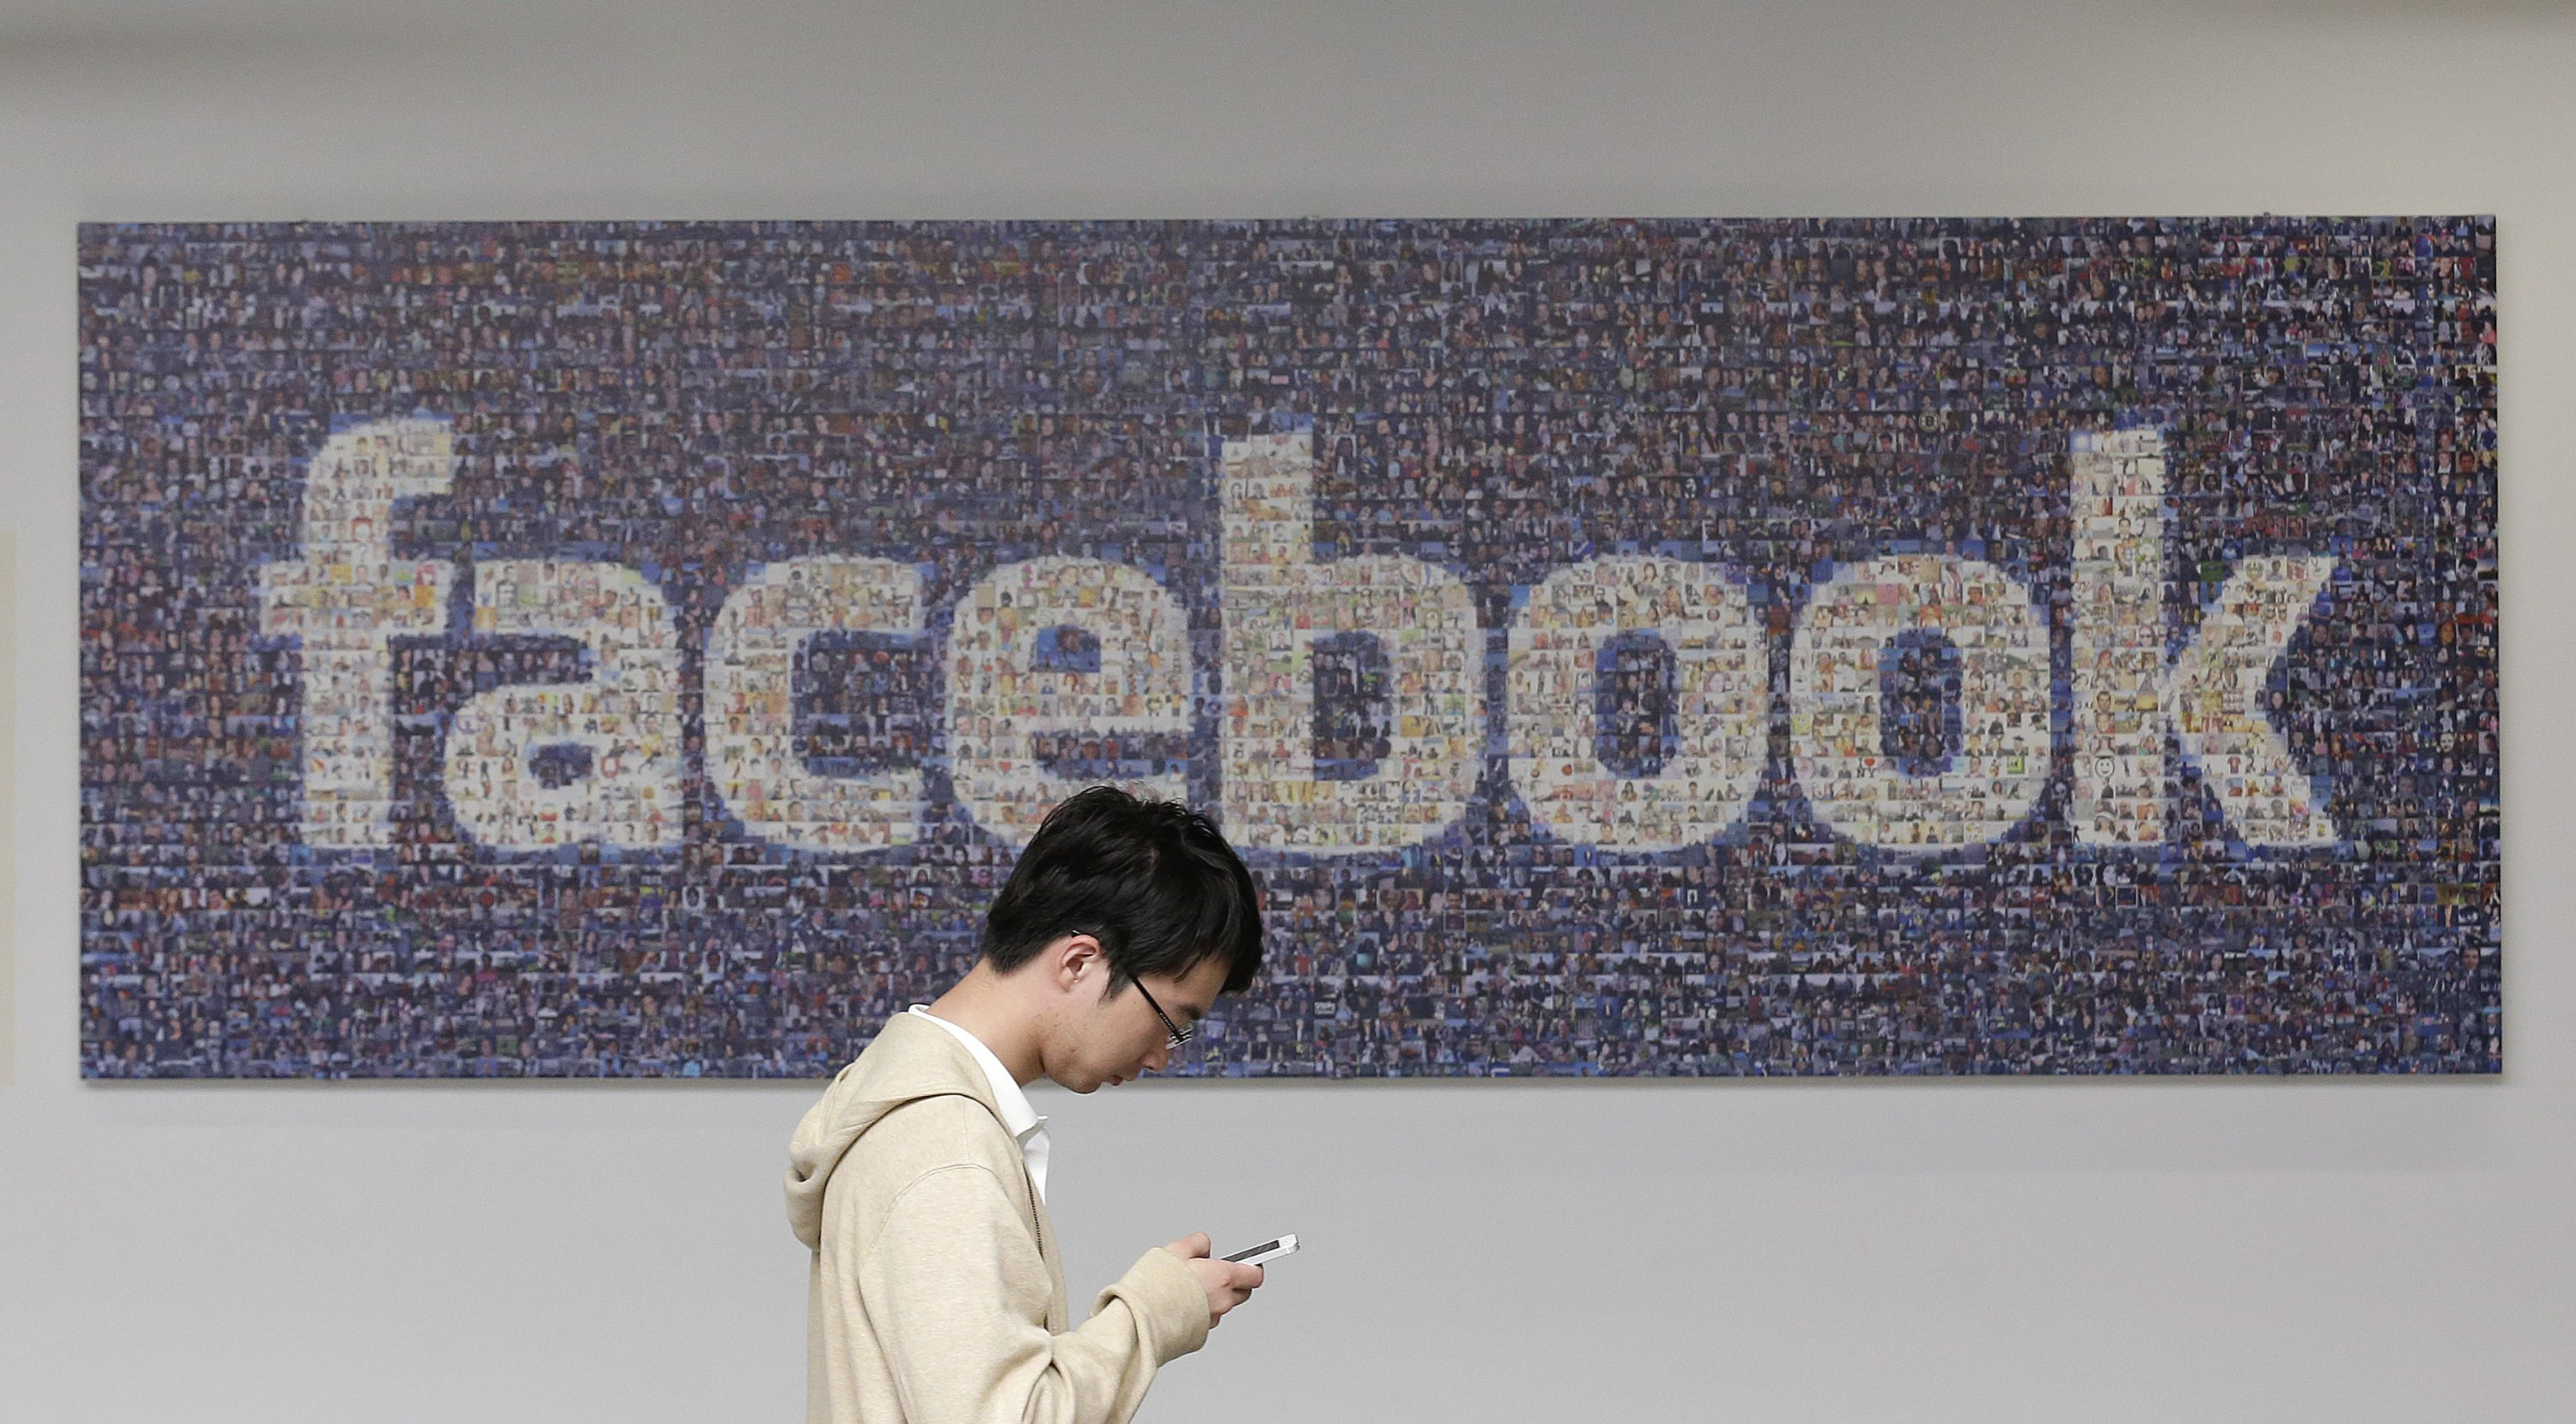 In this June 11, 2014 photo, a man walks past a Facebook sign in an office on the Facebook campus in Menlo Park, Calif. The Proceedings of the National Academy of Sciences says that as a private company, Facebook had no obligation to adhere to rules on the use of human subjects in the study. But the journal says Facebook's data collection practices may have violated scientific principles requiring the consent of study subjects.